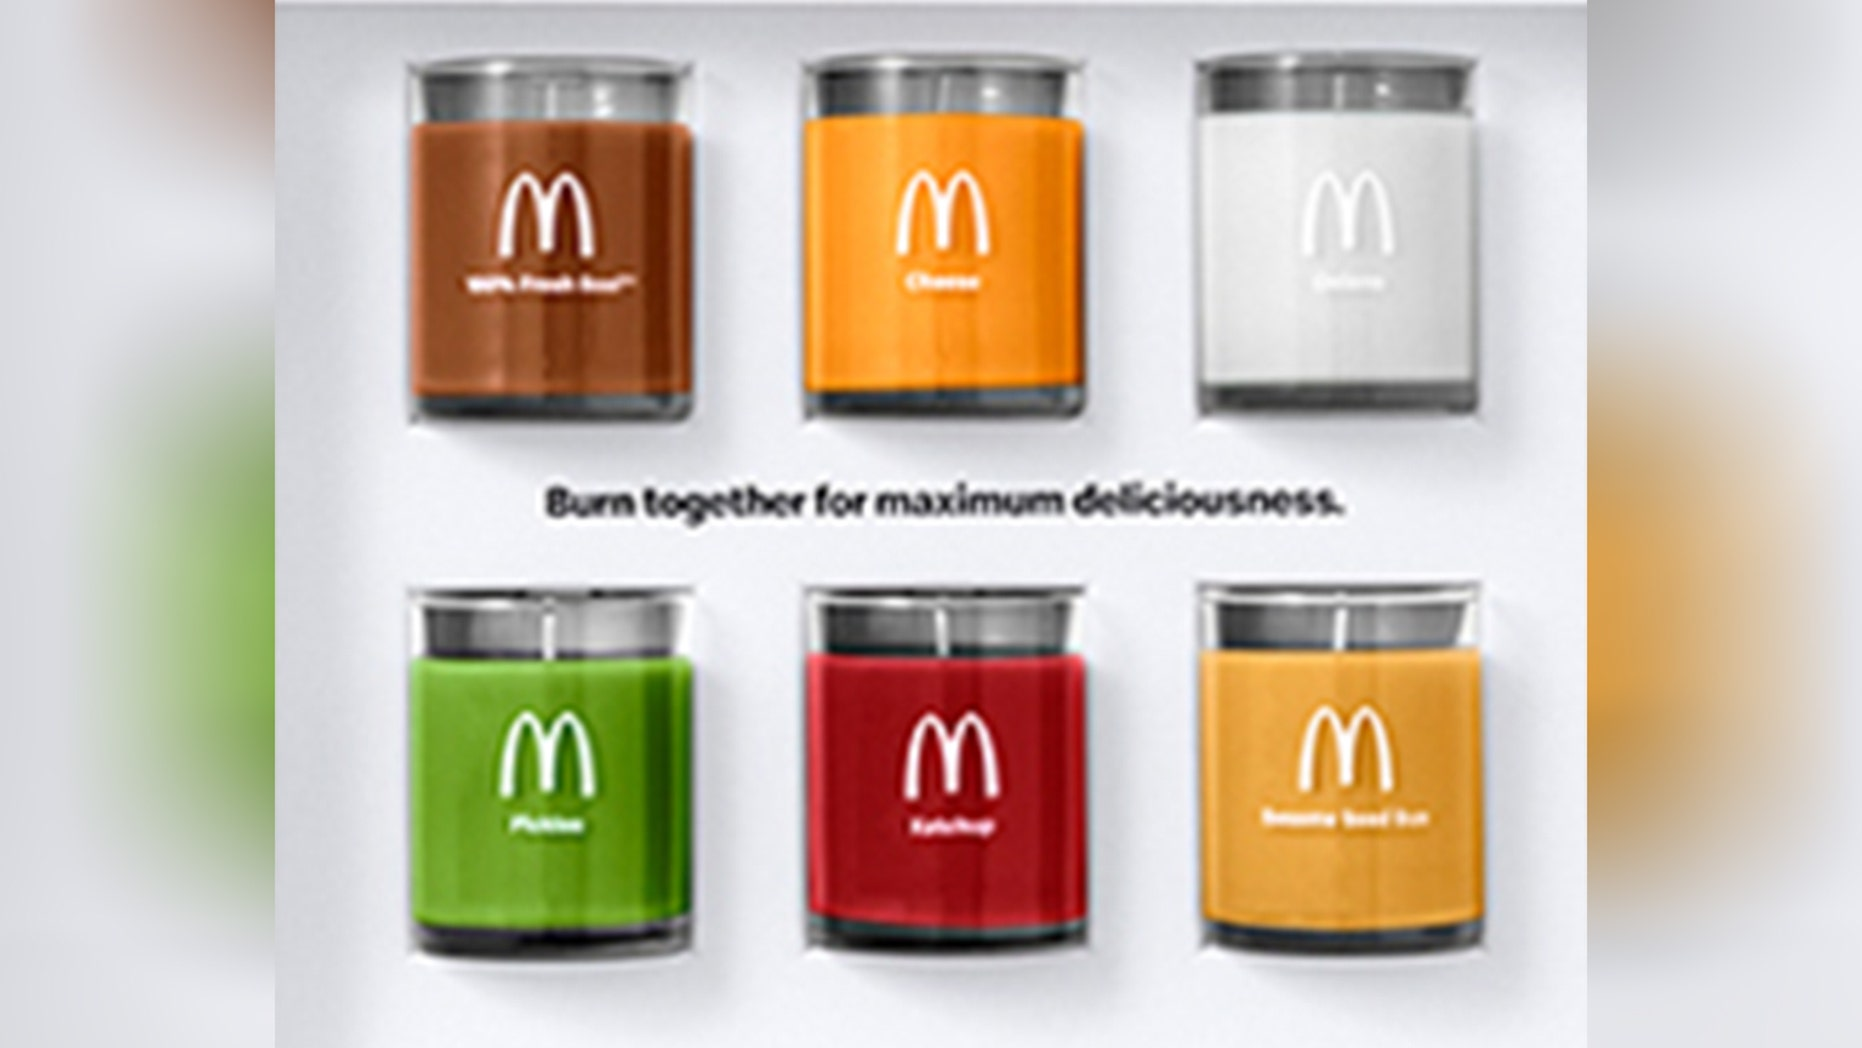 Westlake Legal Group mcdonalds-candles McDonald's debuts pickle- and beef-scented candles as part of 'Quarter Pounder Fan Club' merch fox-news/food-drink/food/fast-food fox news fnc/food-drink fnc article Alexandra Deabler 13df3e17-af9a-569b-a1be-4964d10b702d